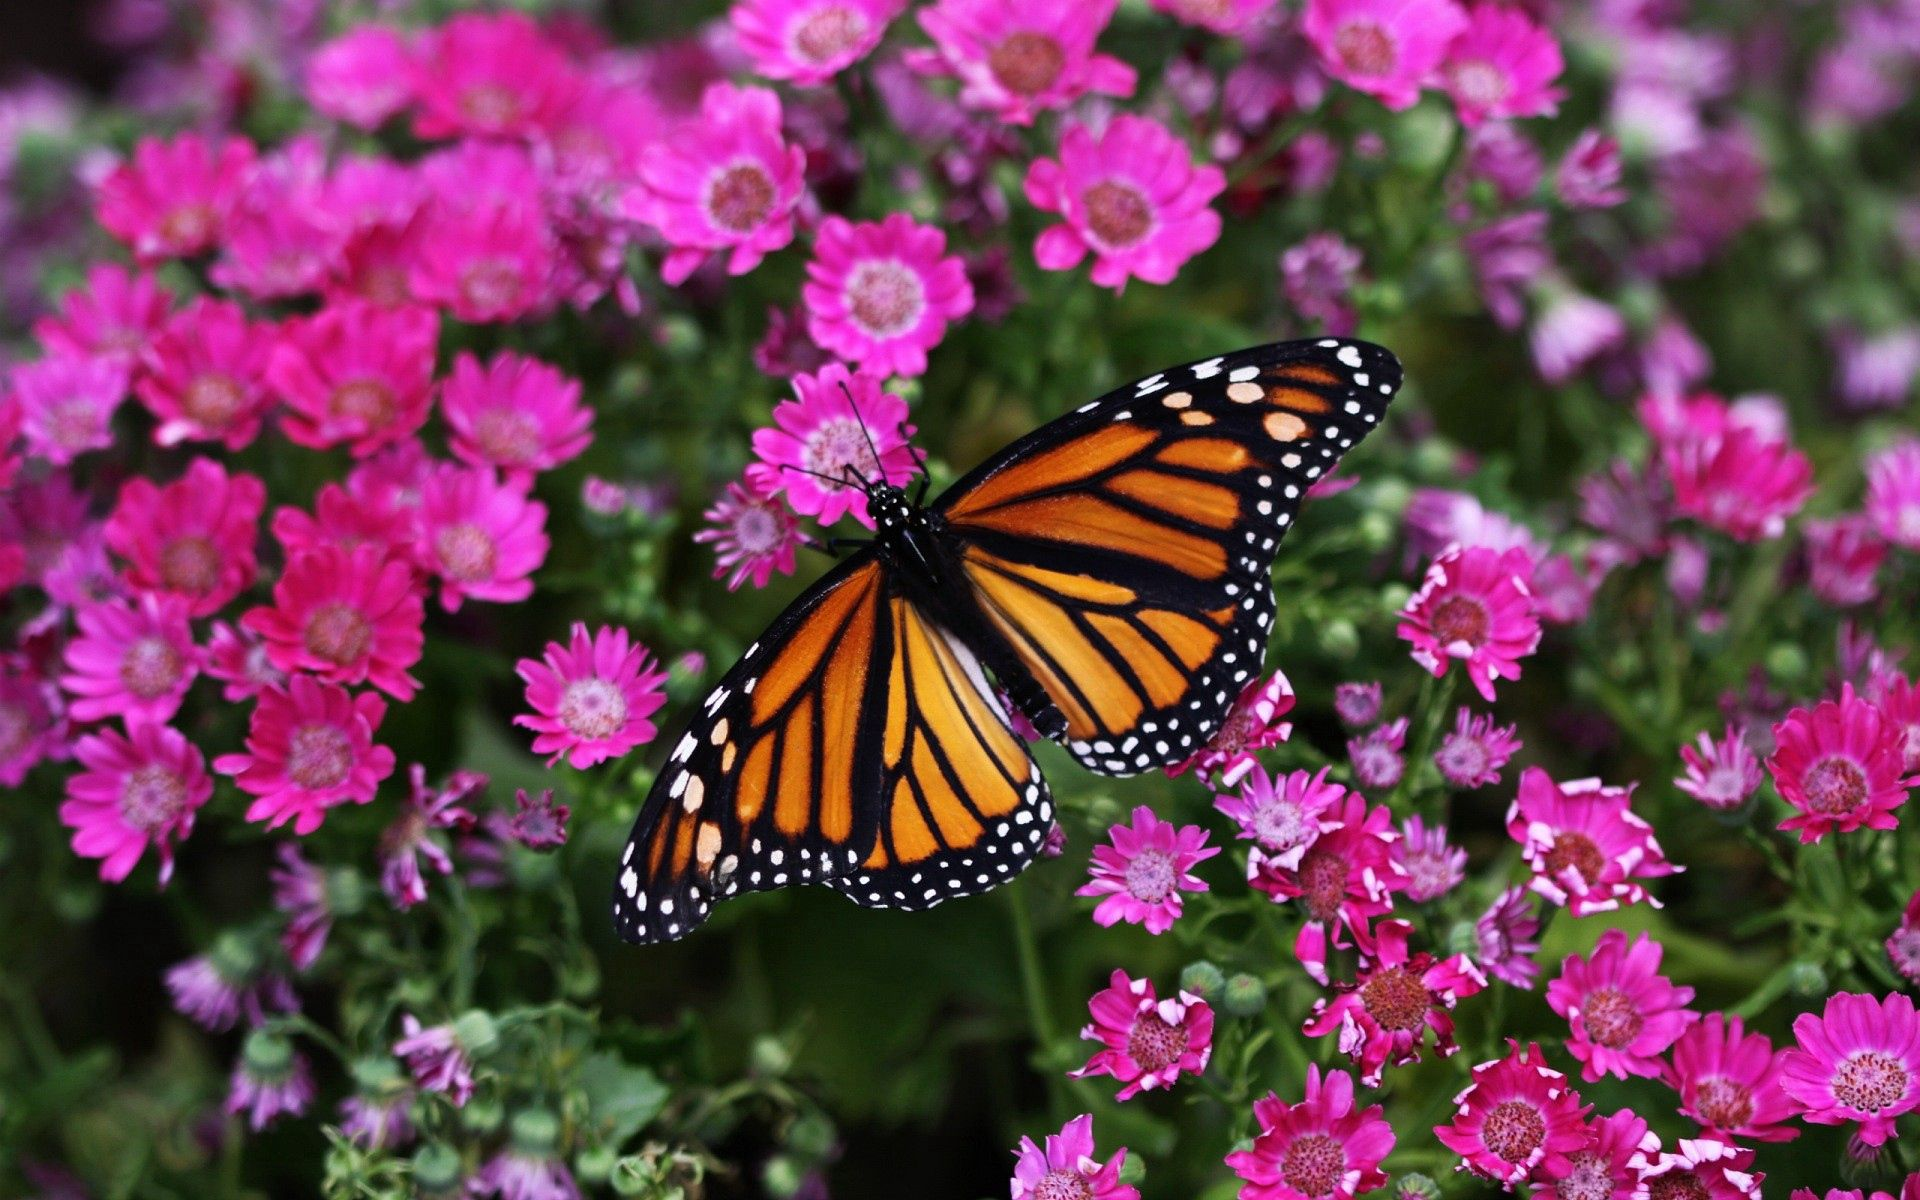 144411 download wallpaper Macro, Butterfly, Plant, Flowers screensavers and pictures for free